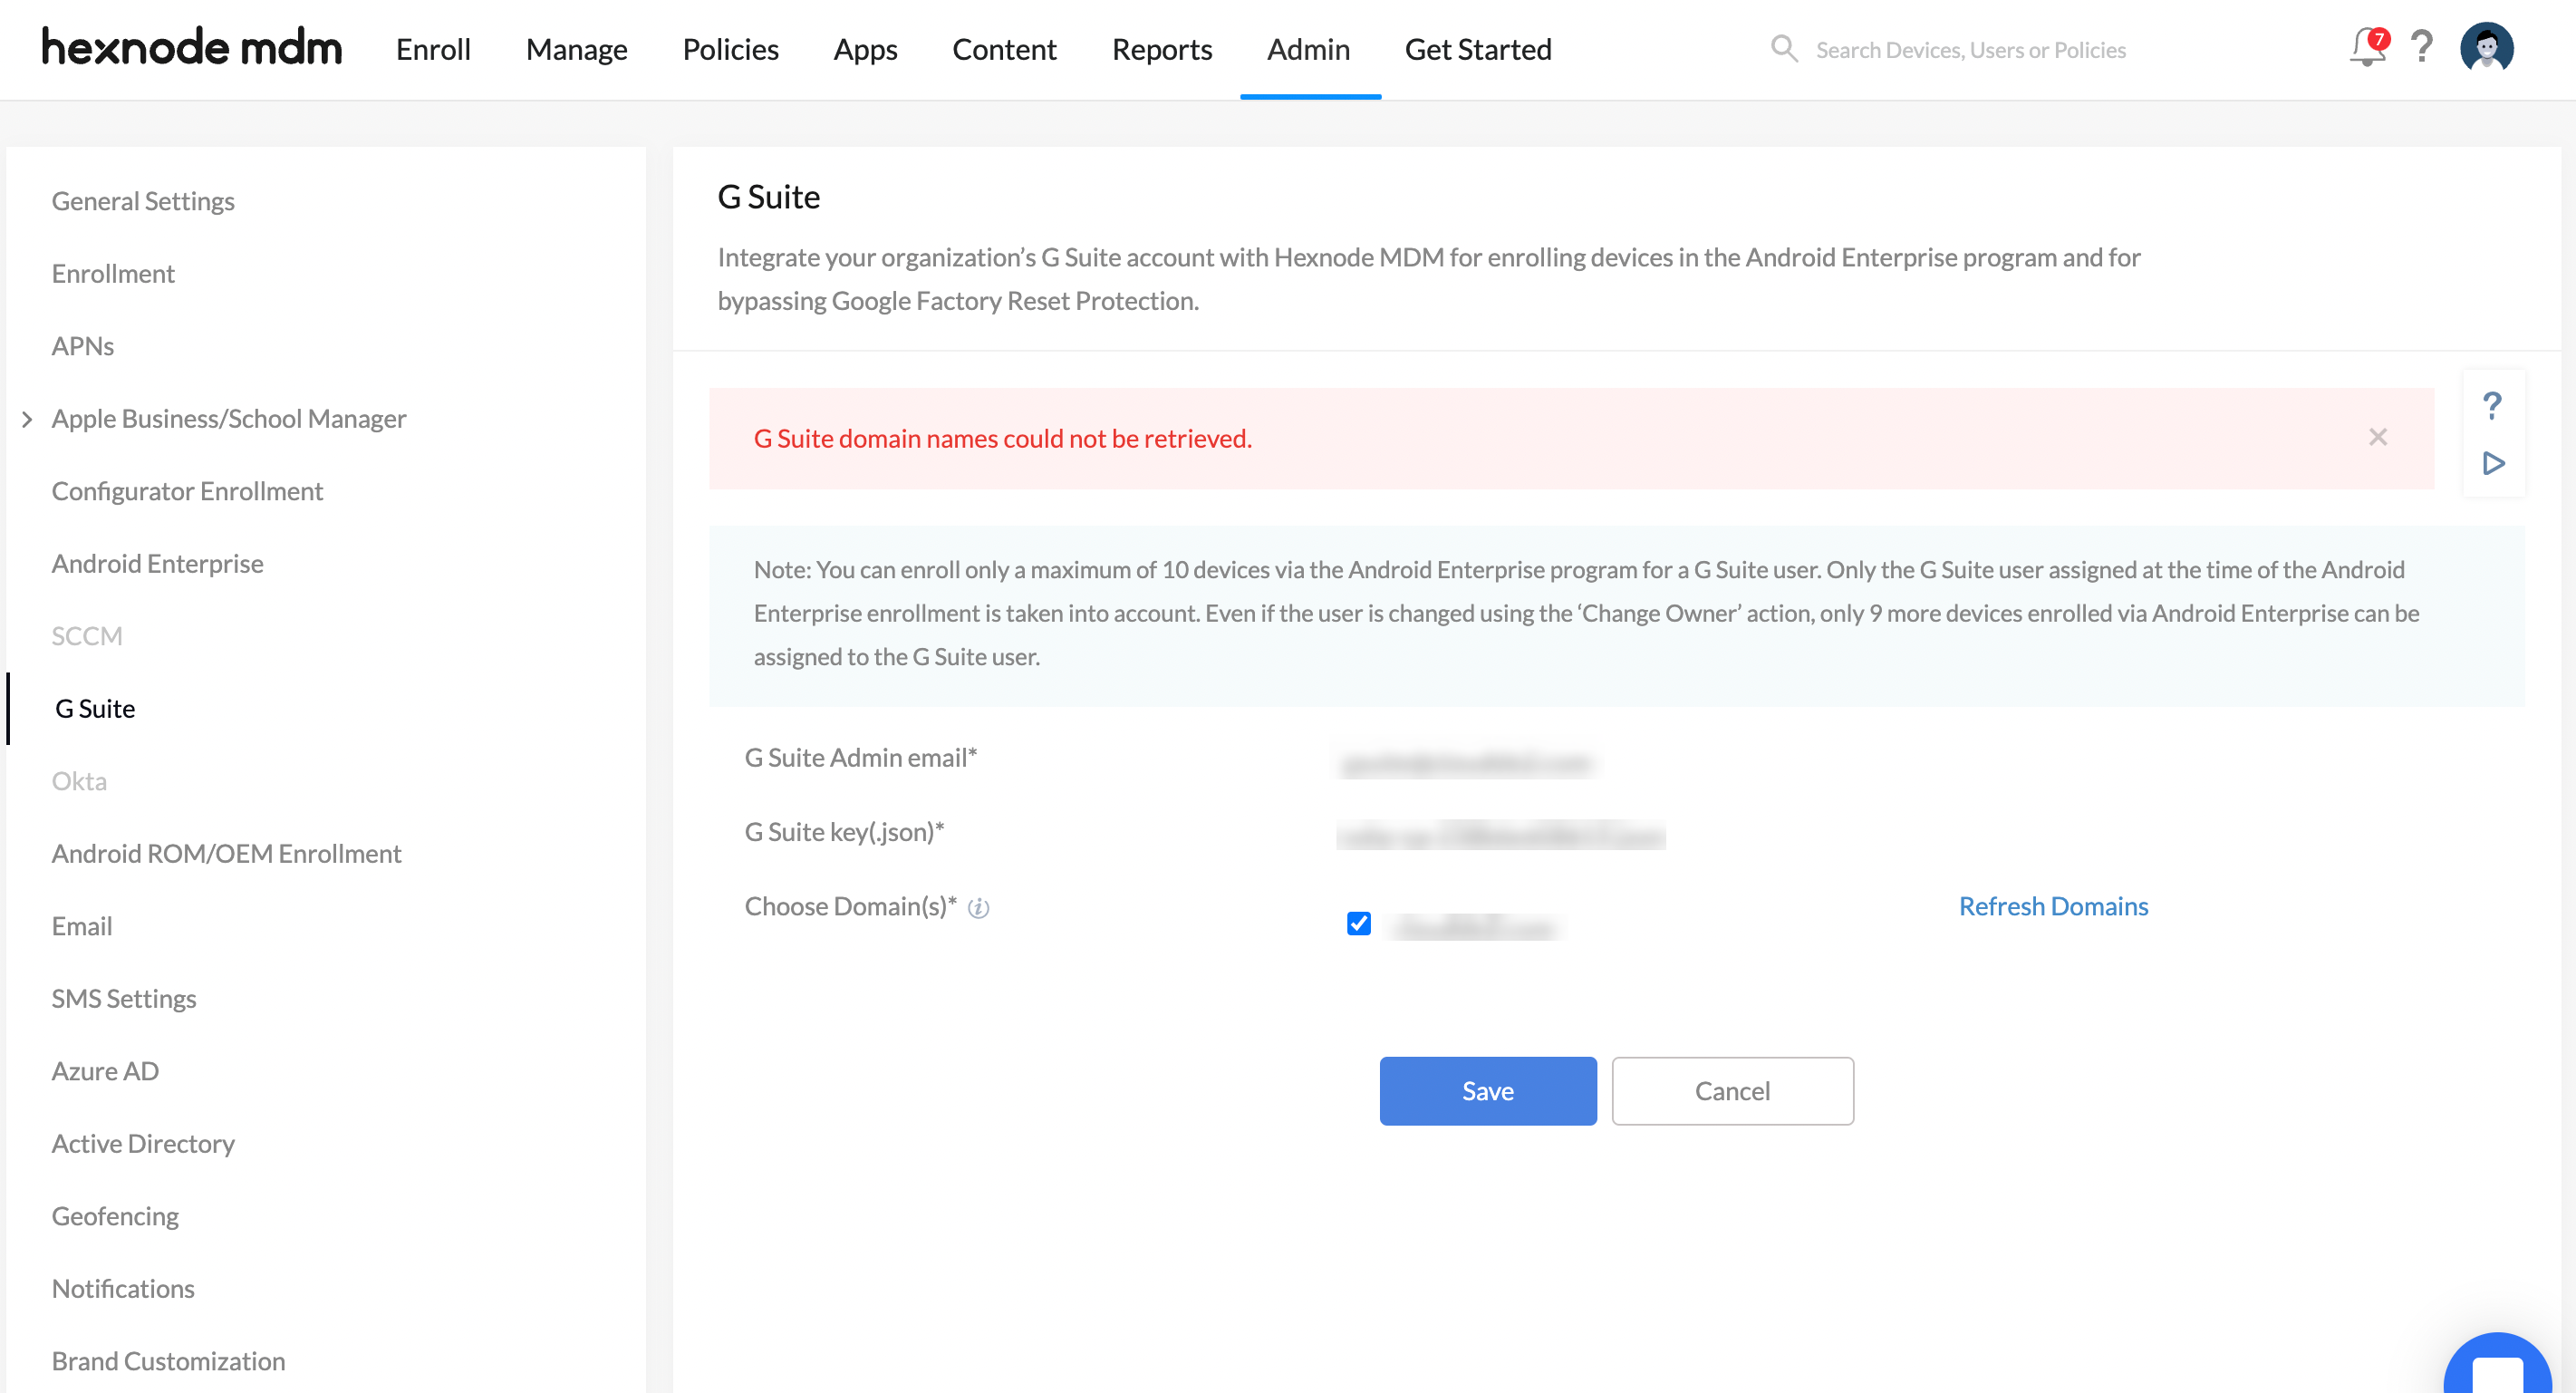 Error while integrating g suite with Hexnode - G Suite domain names could not be retrieved